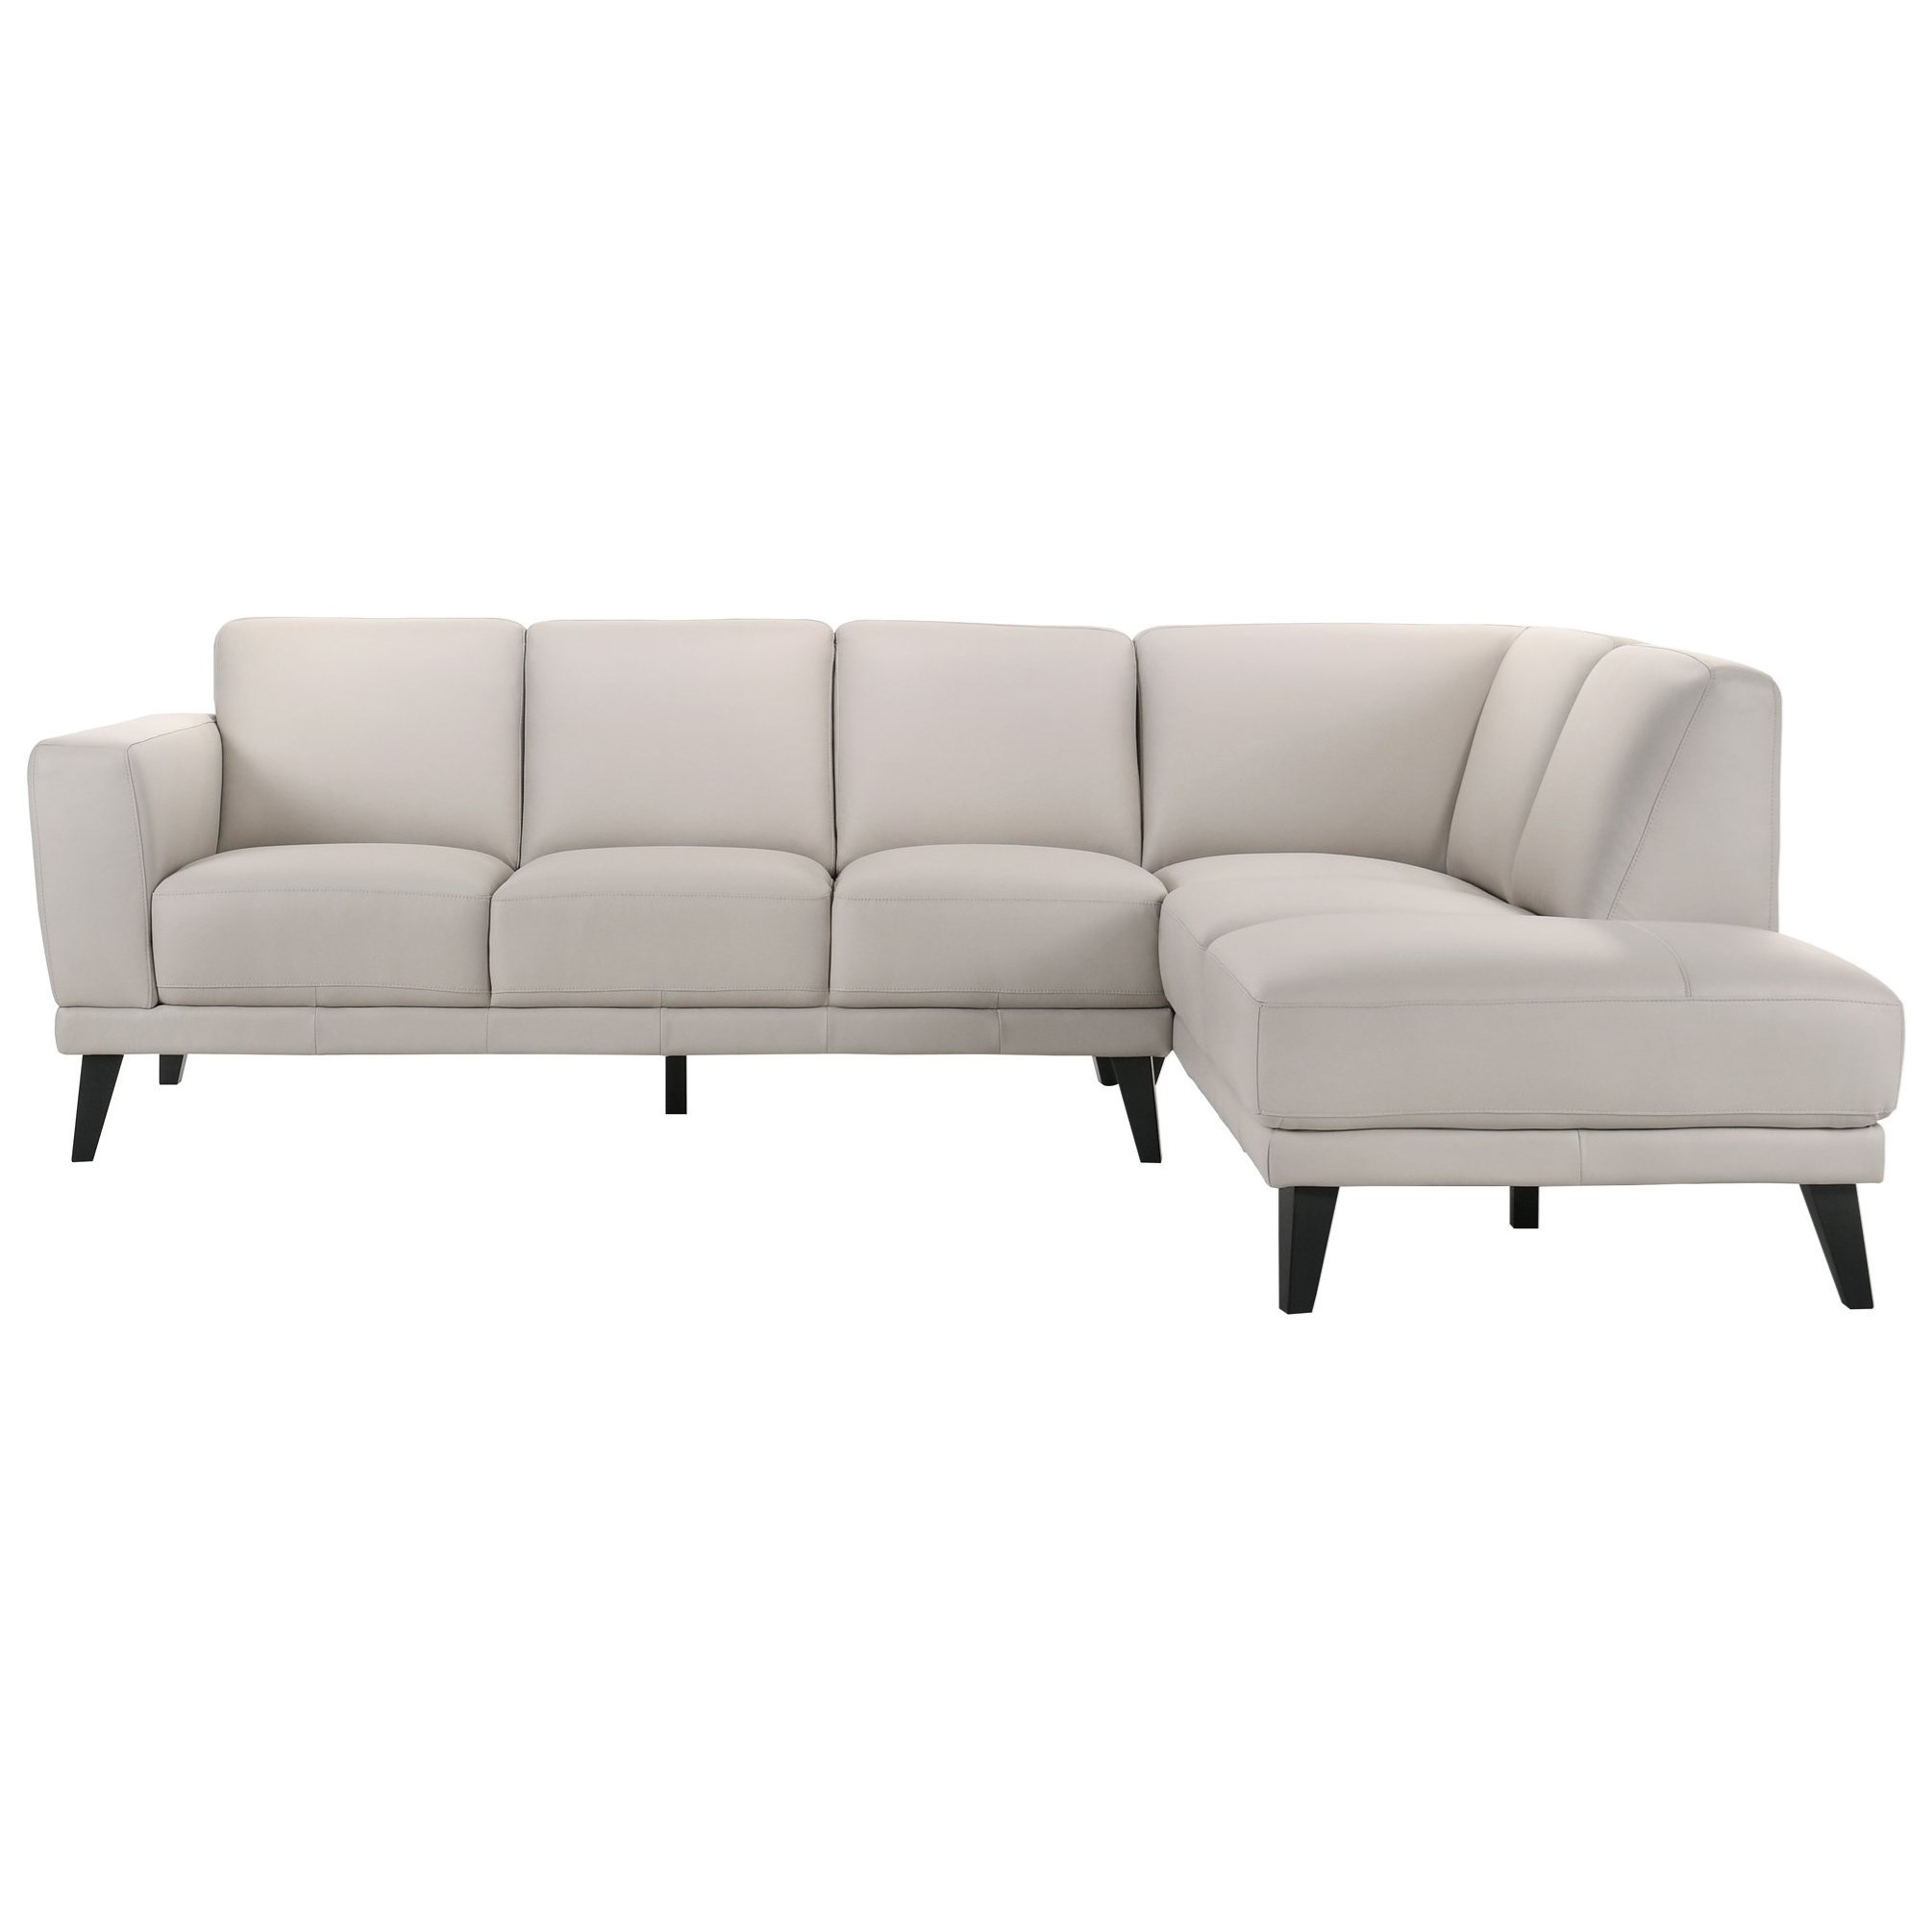 Altamura 5-Seat Sectional w/ RAF Chaise by New Classic at Beds N Stuff